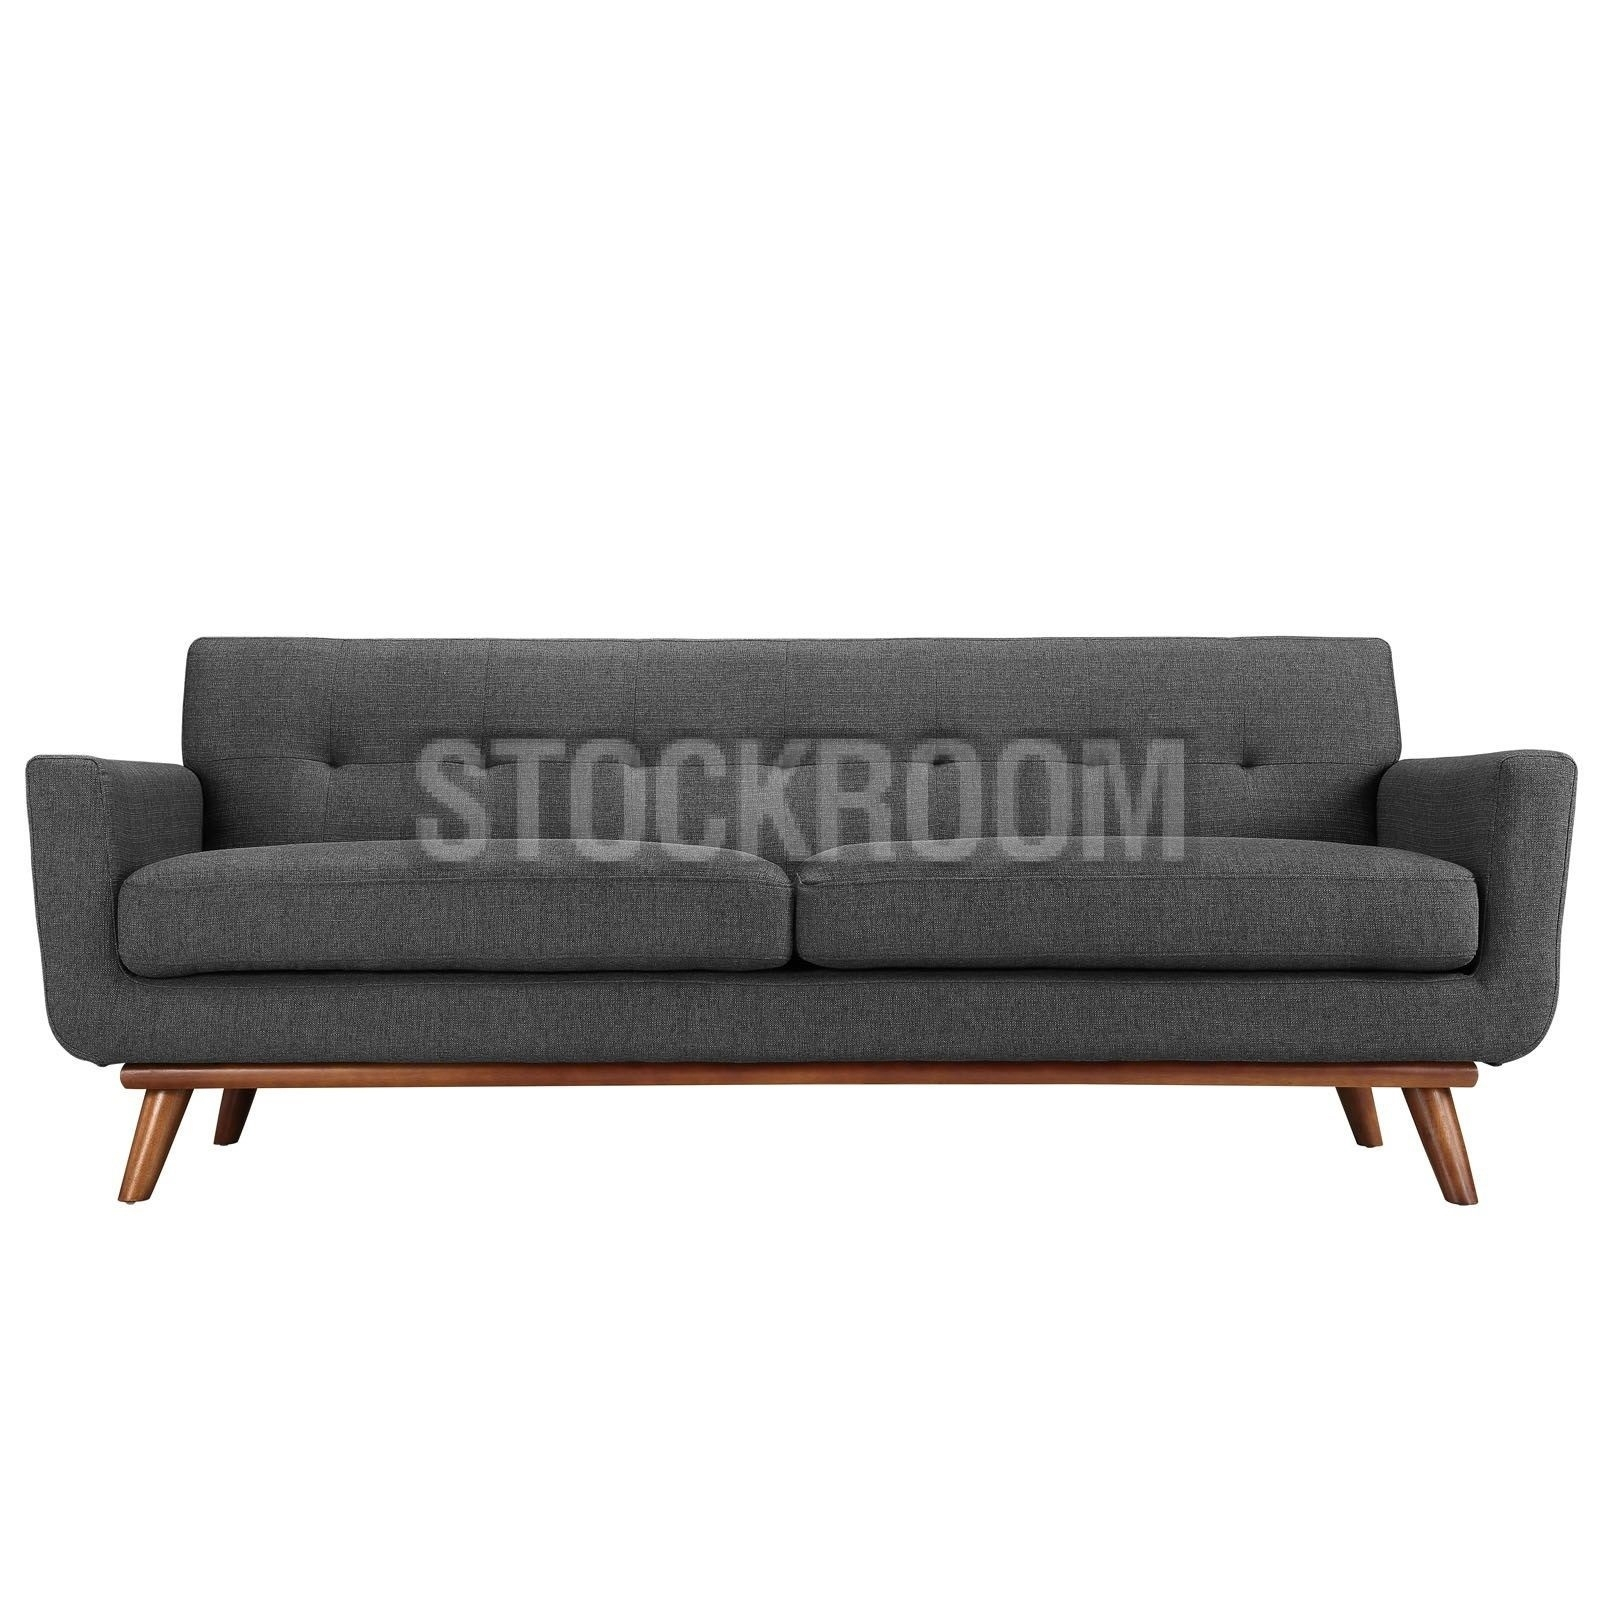 Aquarius Fabric Sofa 2 Seater : Stockroom Hong Kong Contemporary Pertaining To Aquarius Dark Grey Sofa Chairs (Image 6 of 25)